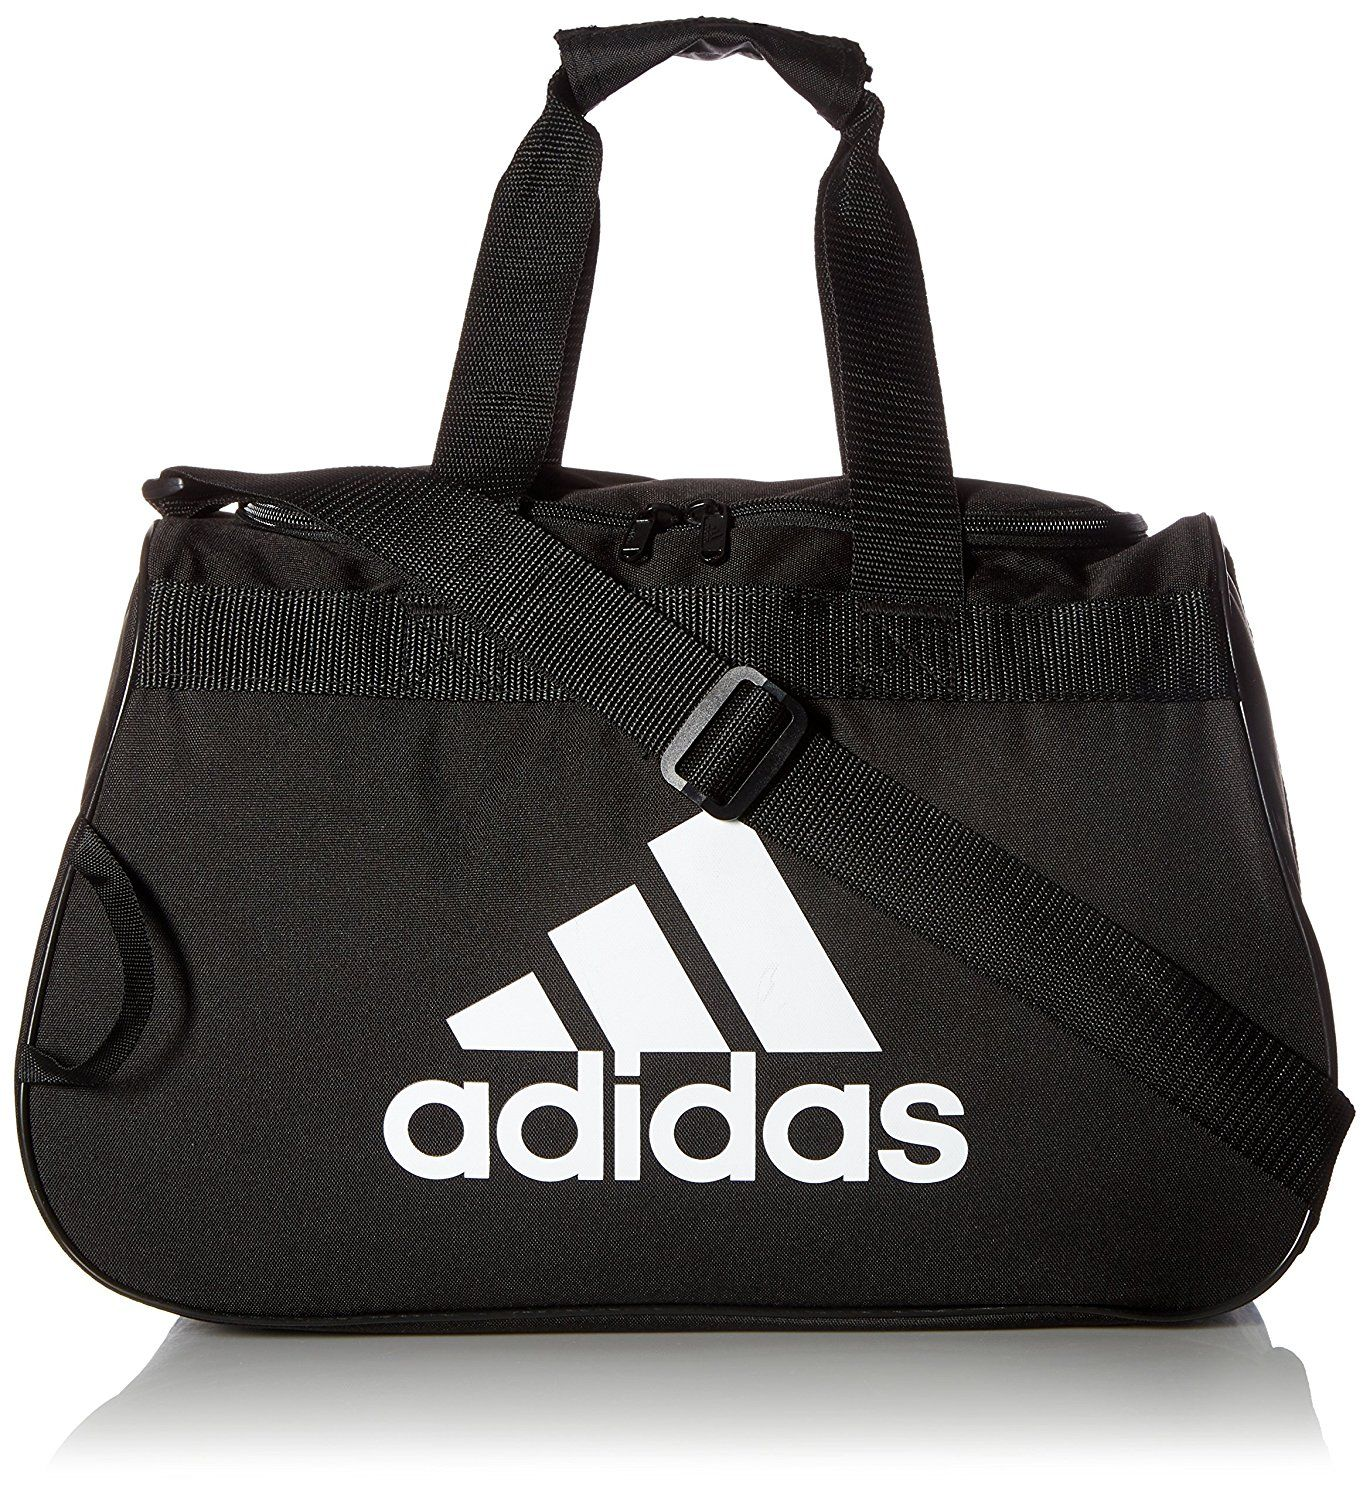 ef428975c9f Free Shipping · adidas Diablo Small Duffle Bag Best Gym, Designer  Backpacks, Gym Bags, Running Workouts